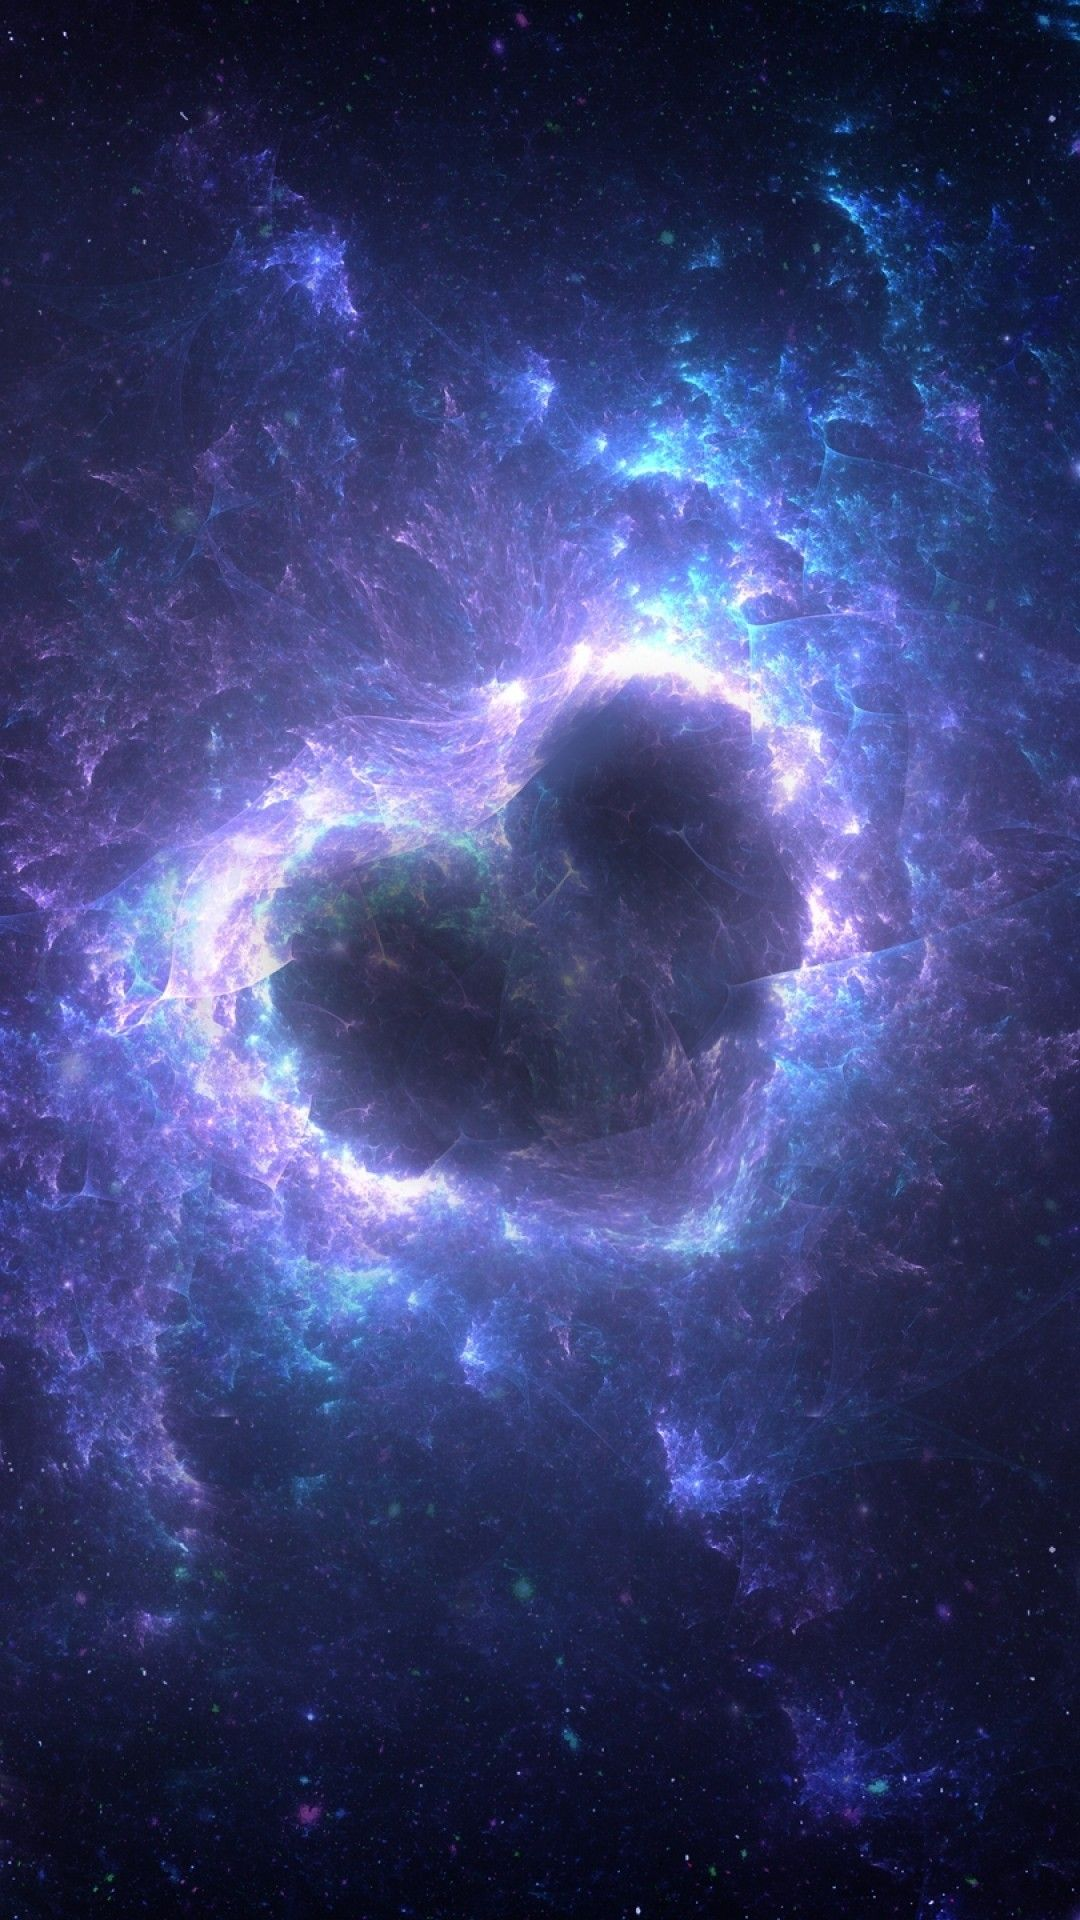 Blue Universe Wallpaper Android In 2020 Blue Galaxy Wallpaper Planets Wallpaper Wallpaper